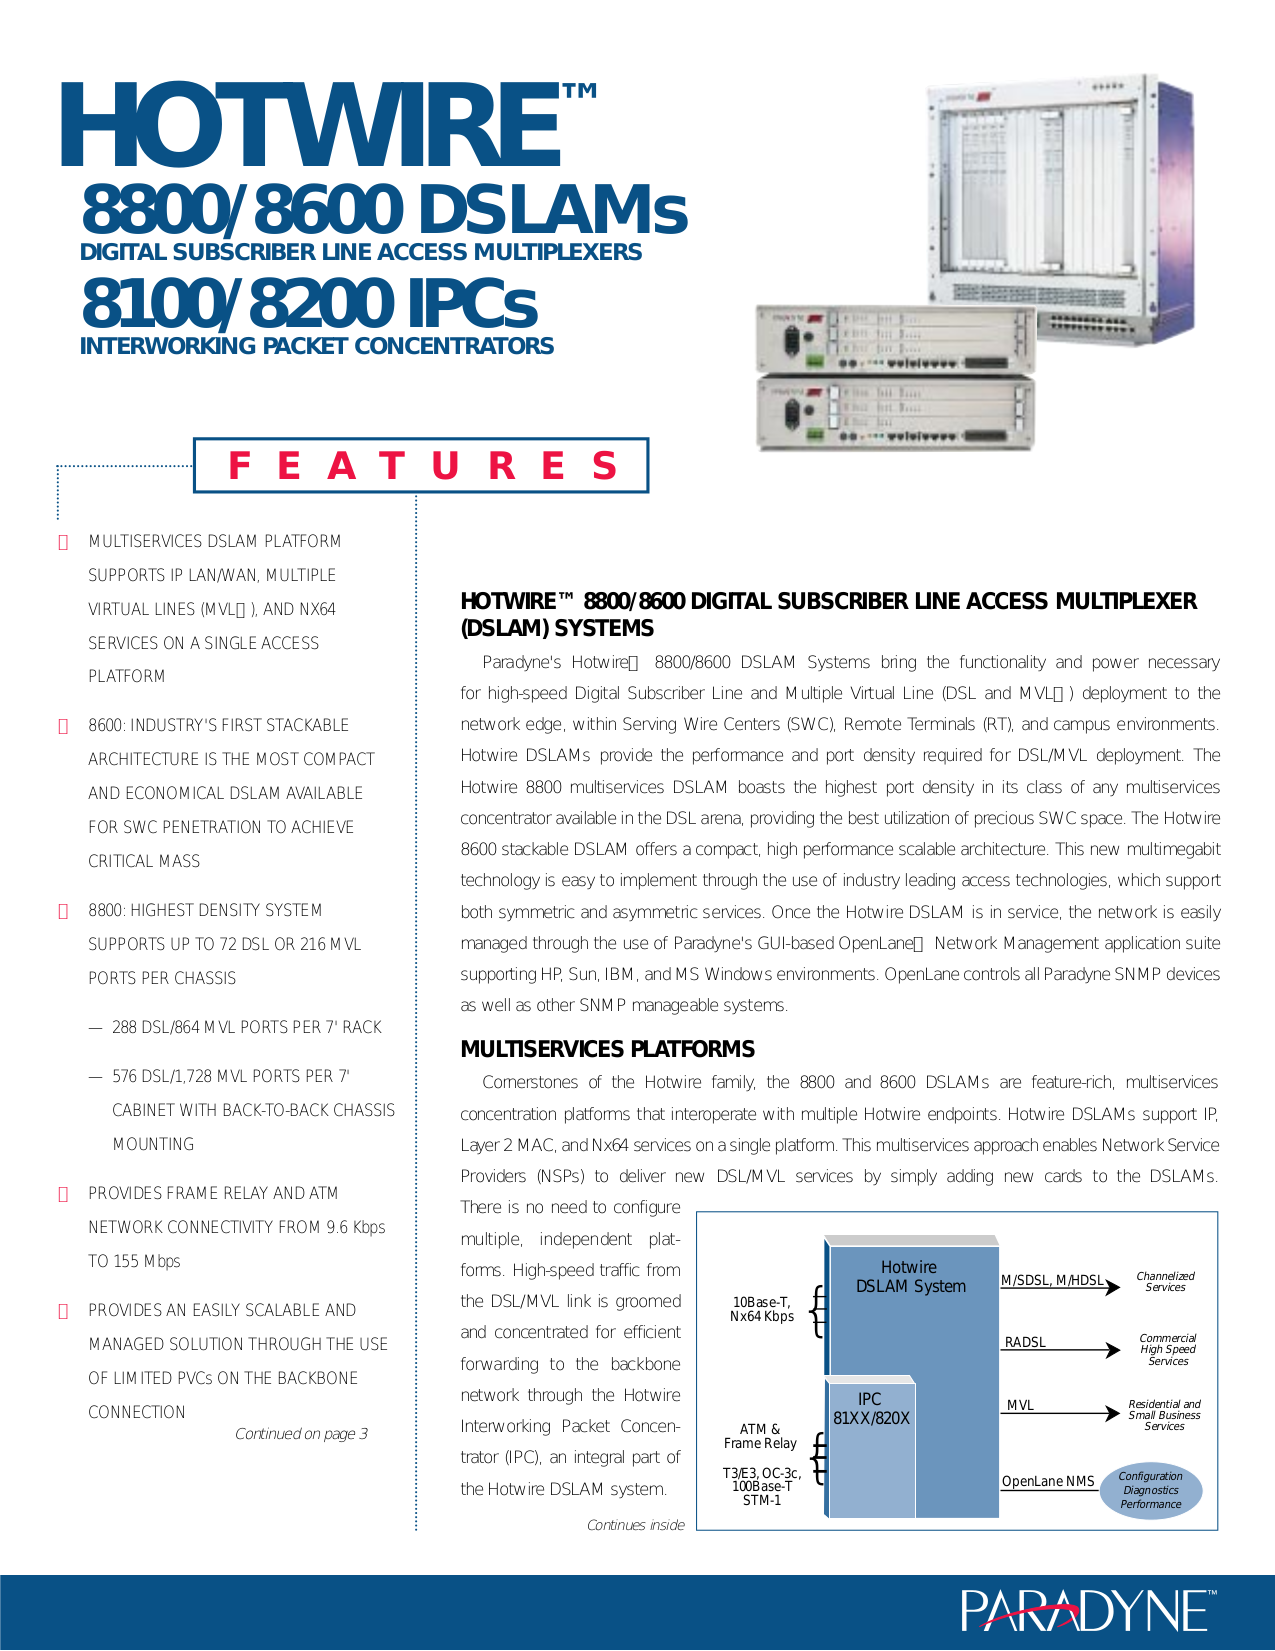 pdf for Nortel Router HotWire 8800 DSLAM manual